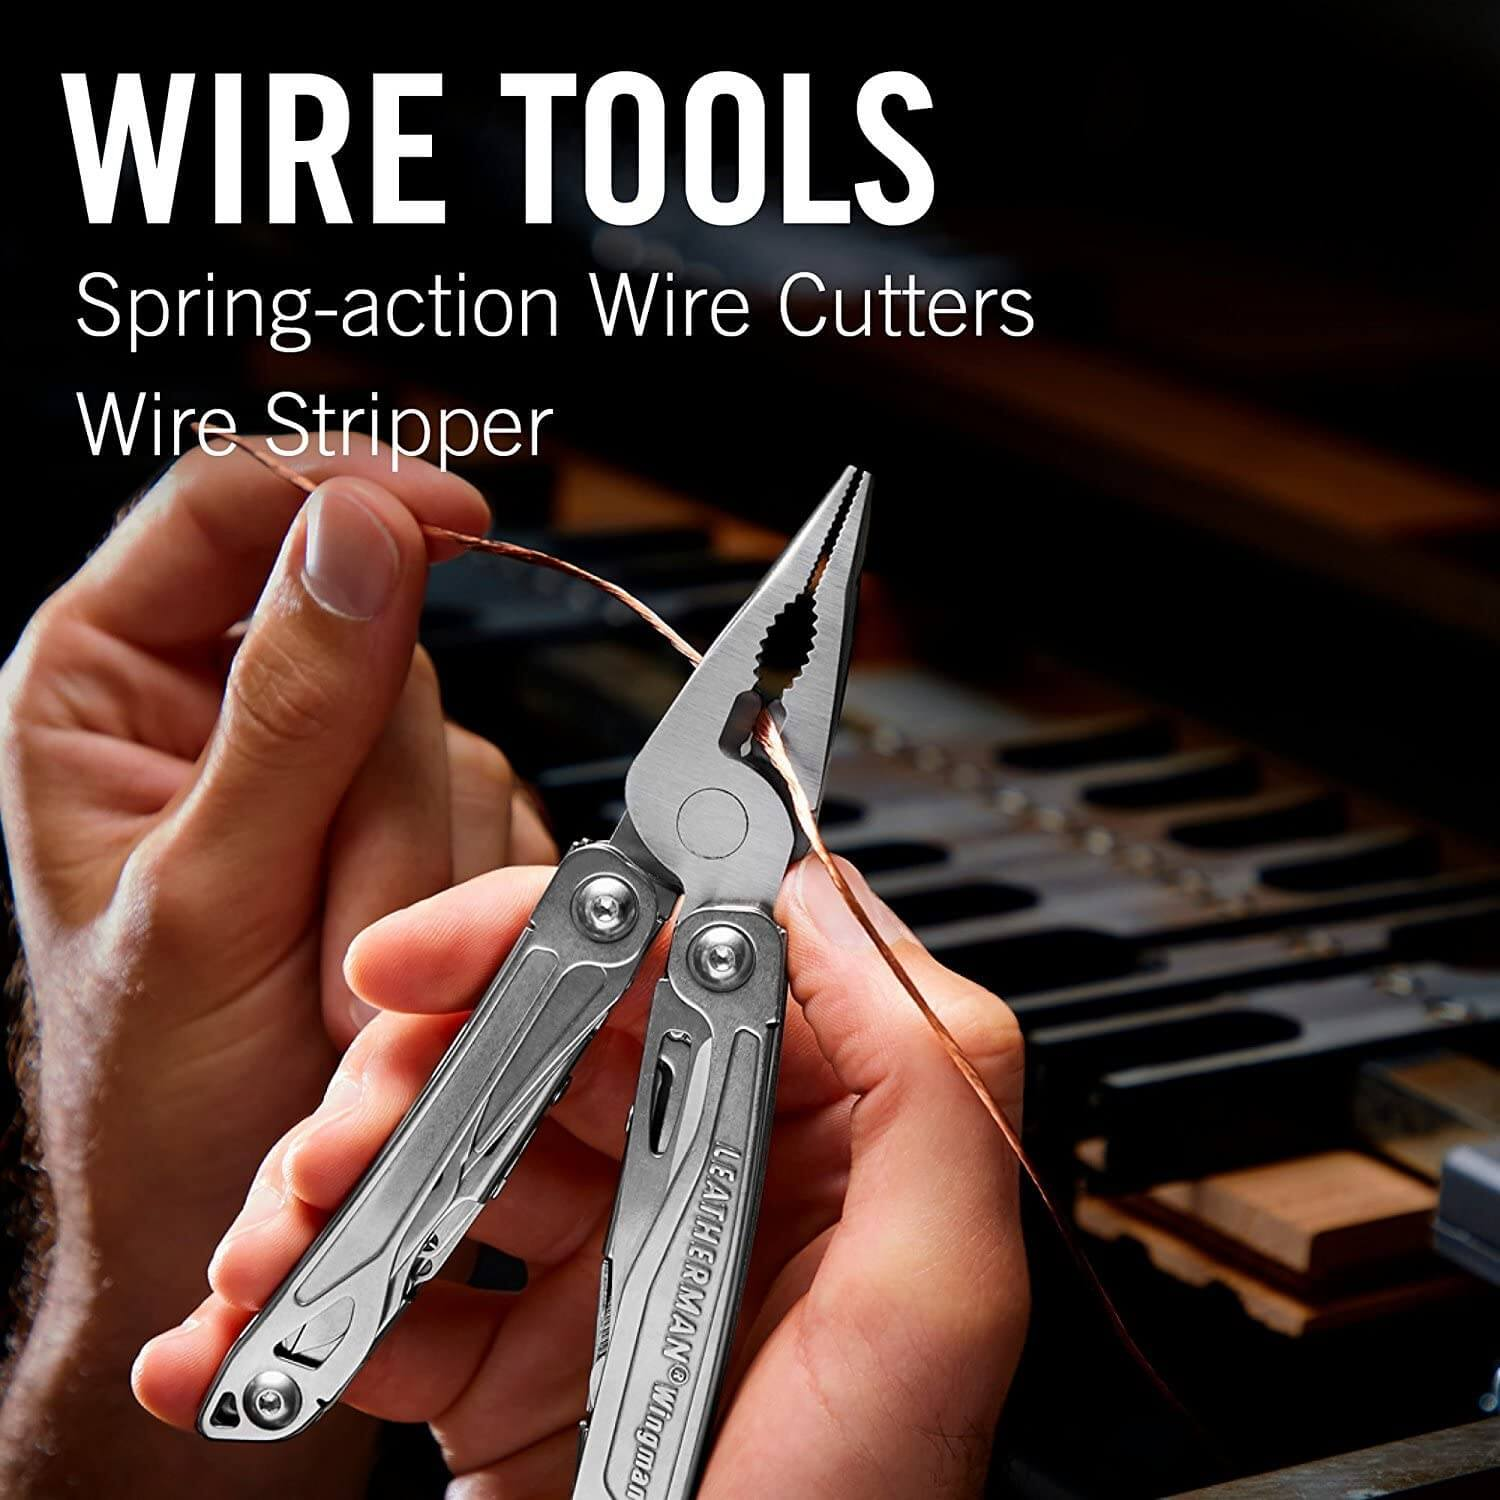 Wire tools, spring action wire cutters